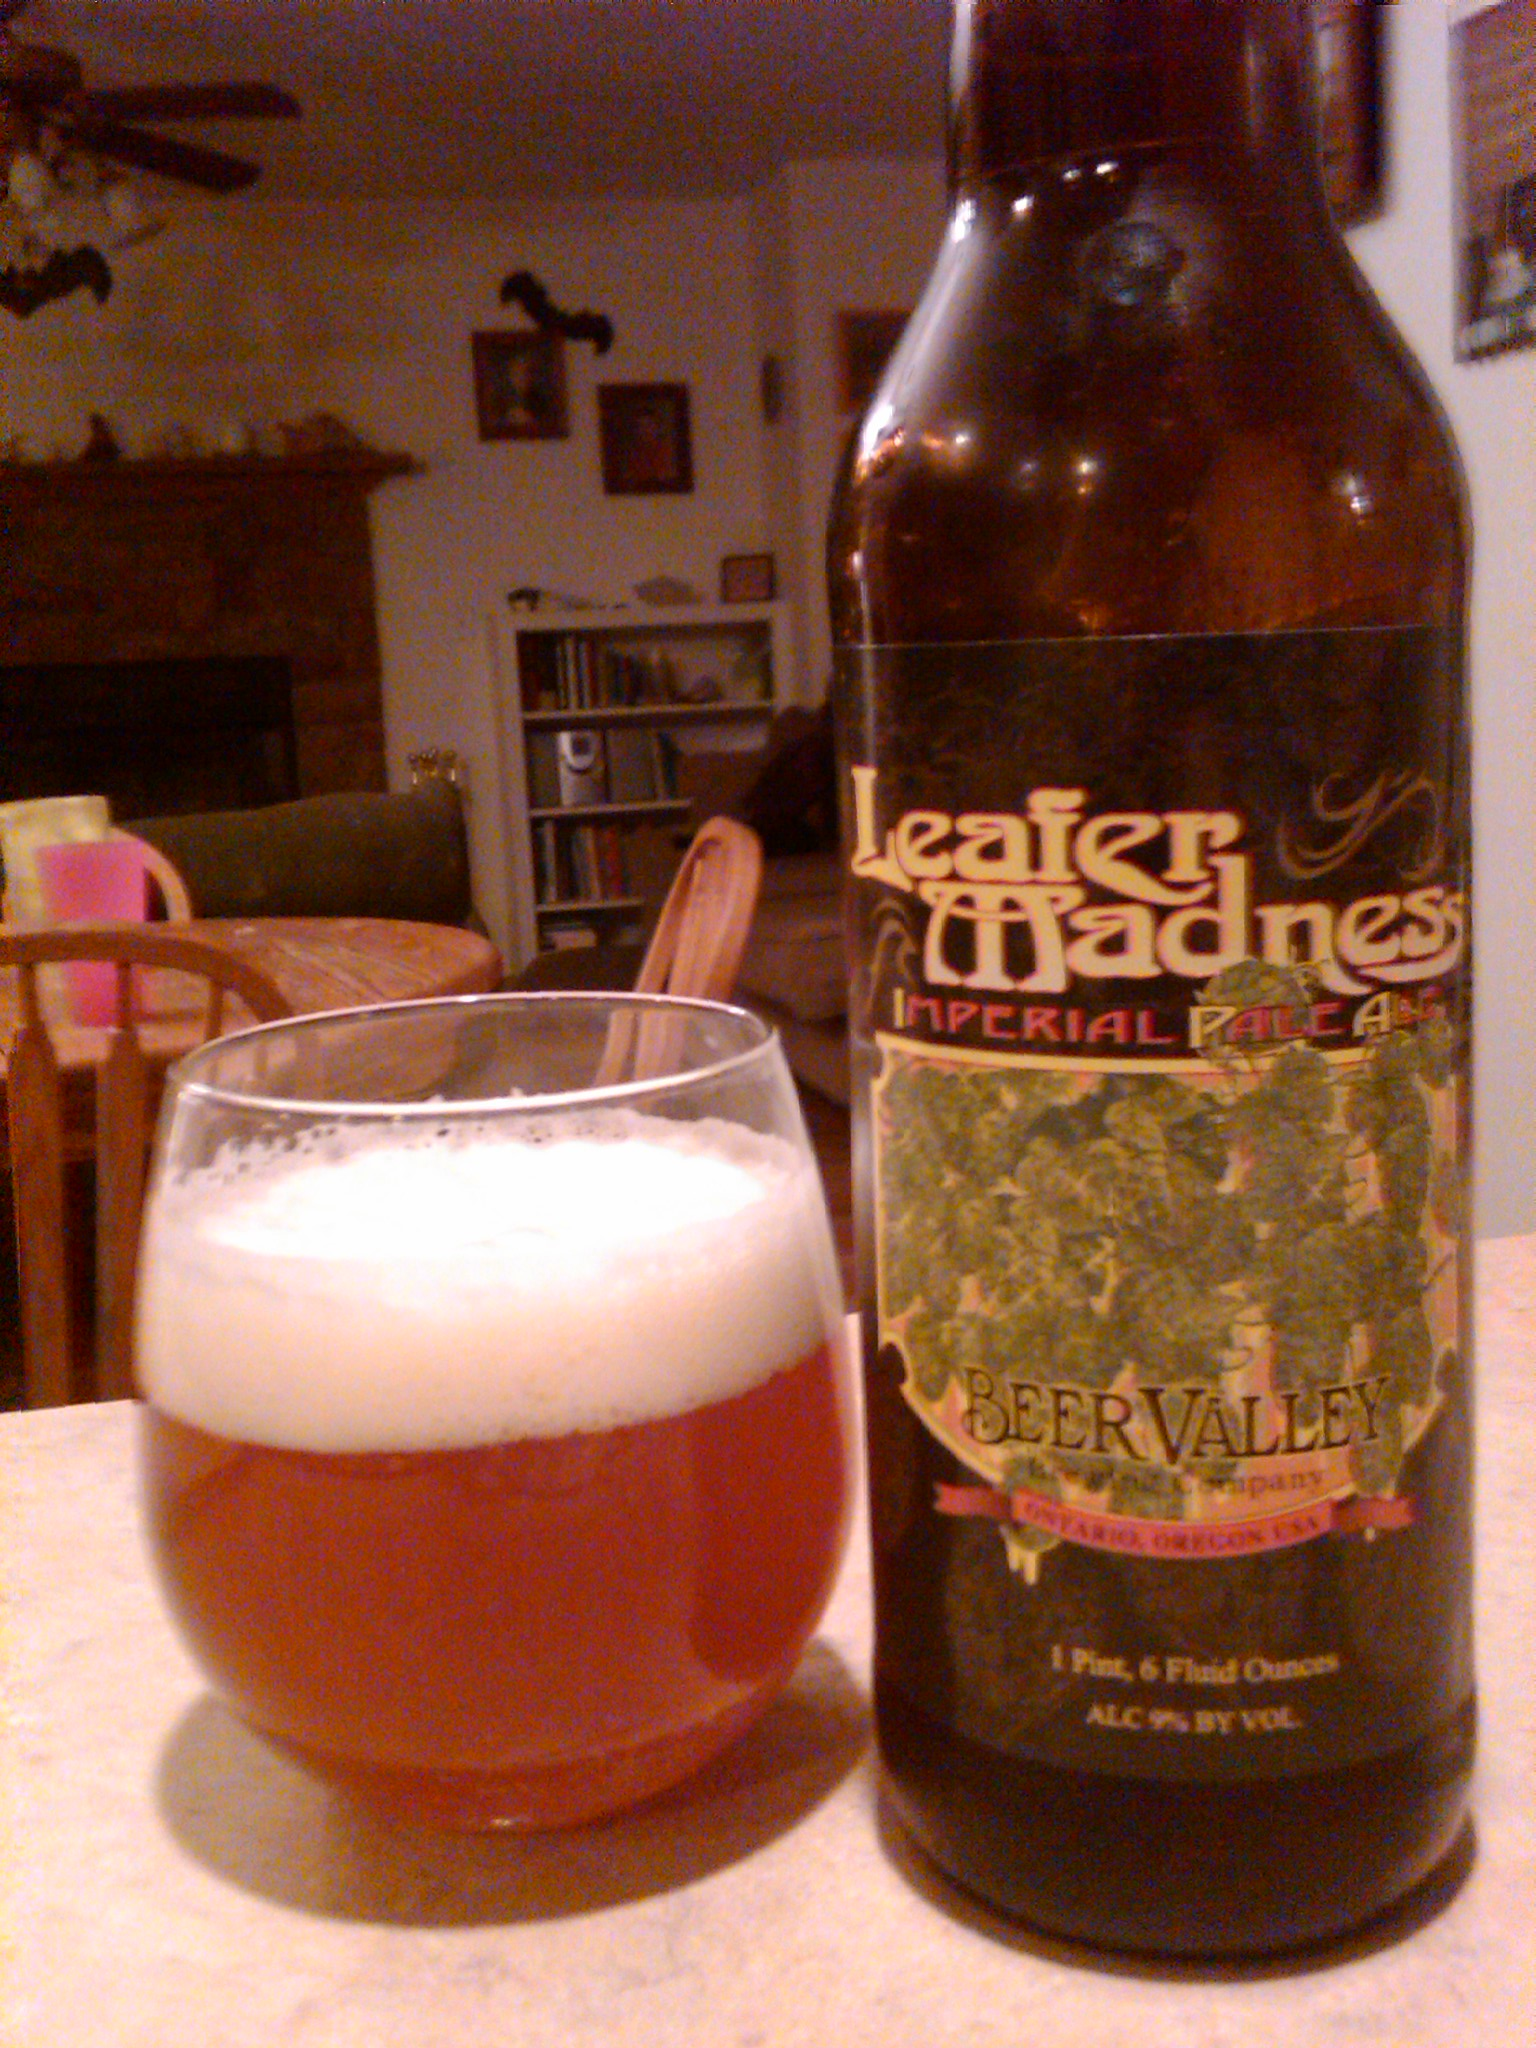 Leafer Madness